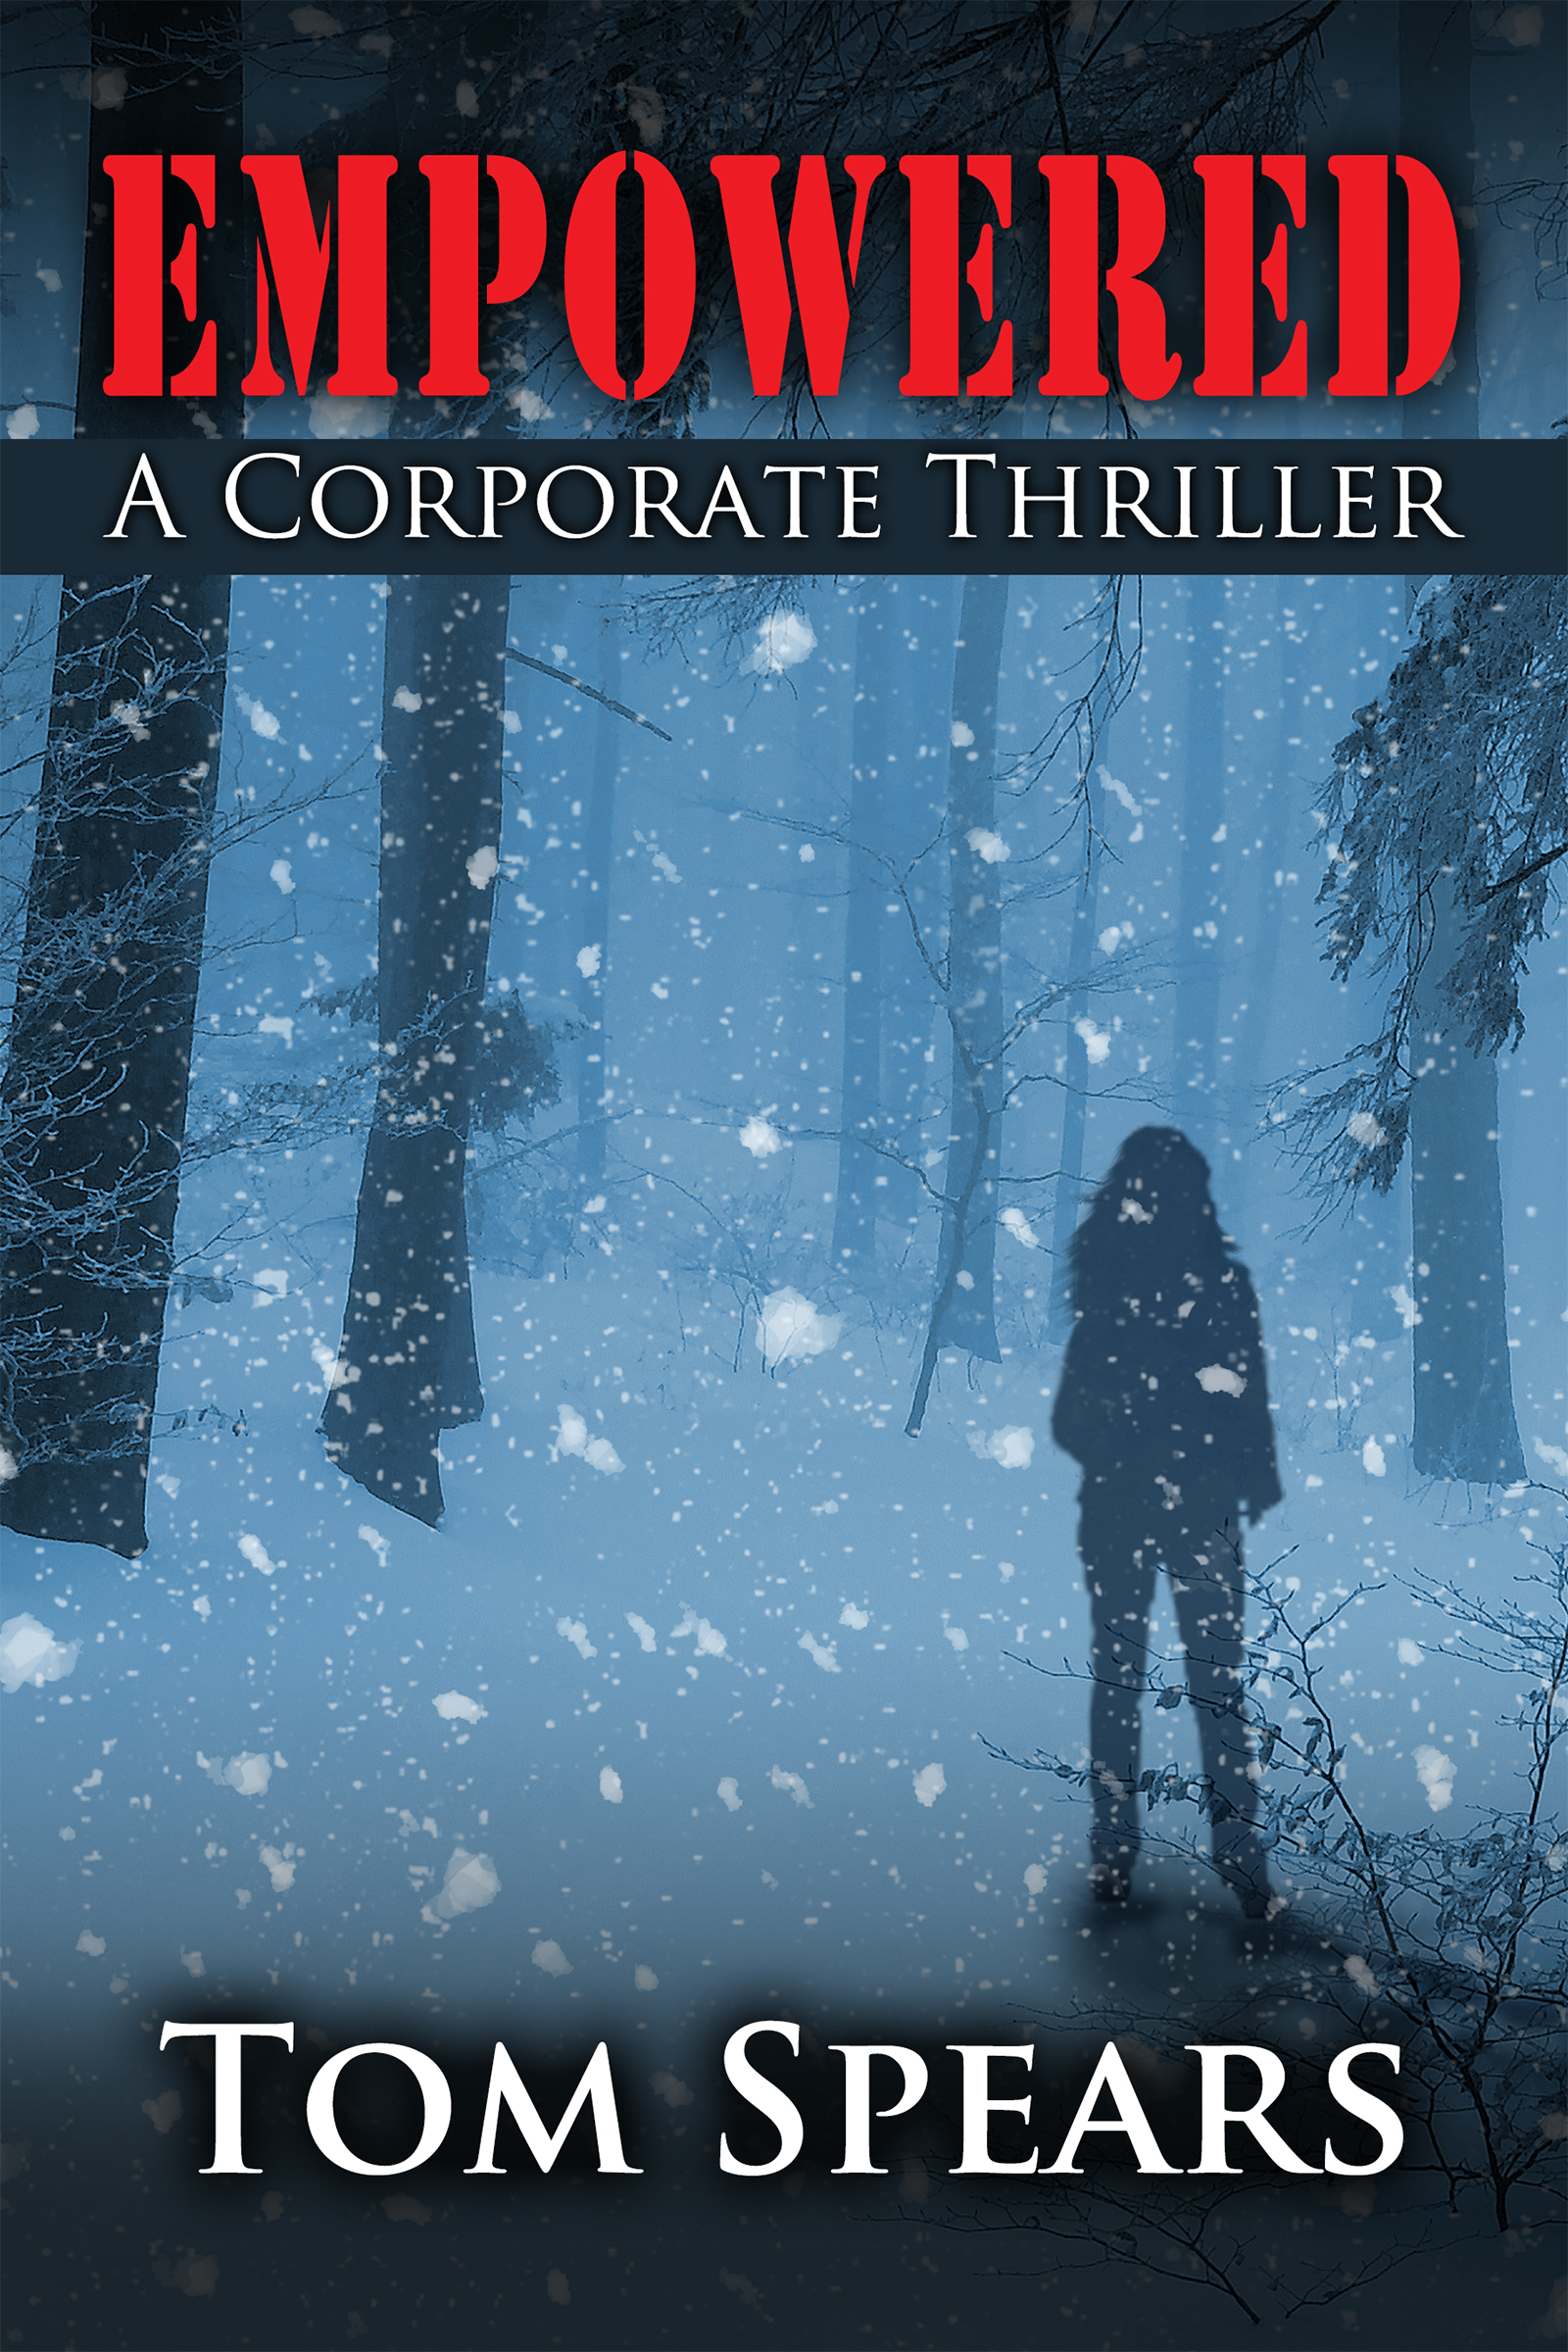 FREE Kindle copies of my latest novel available through 12/24. Click cover image for more details.